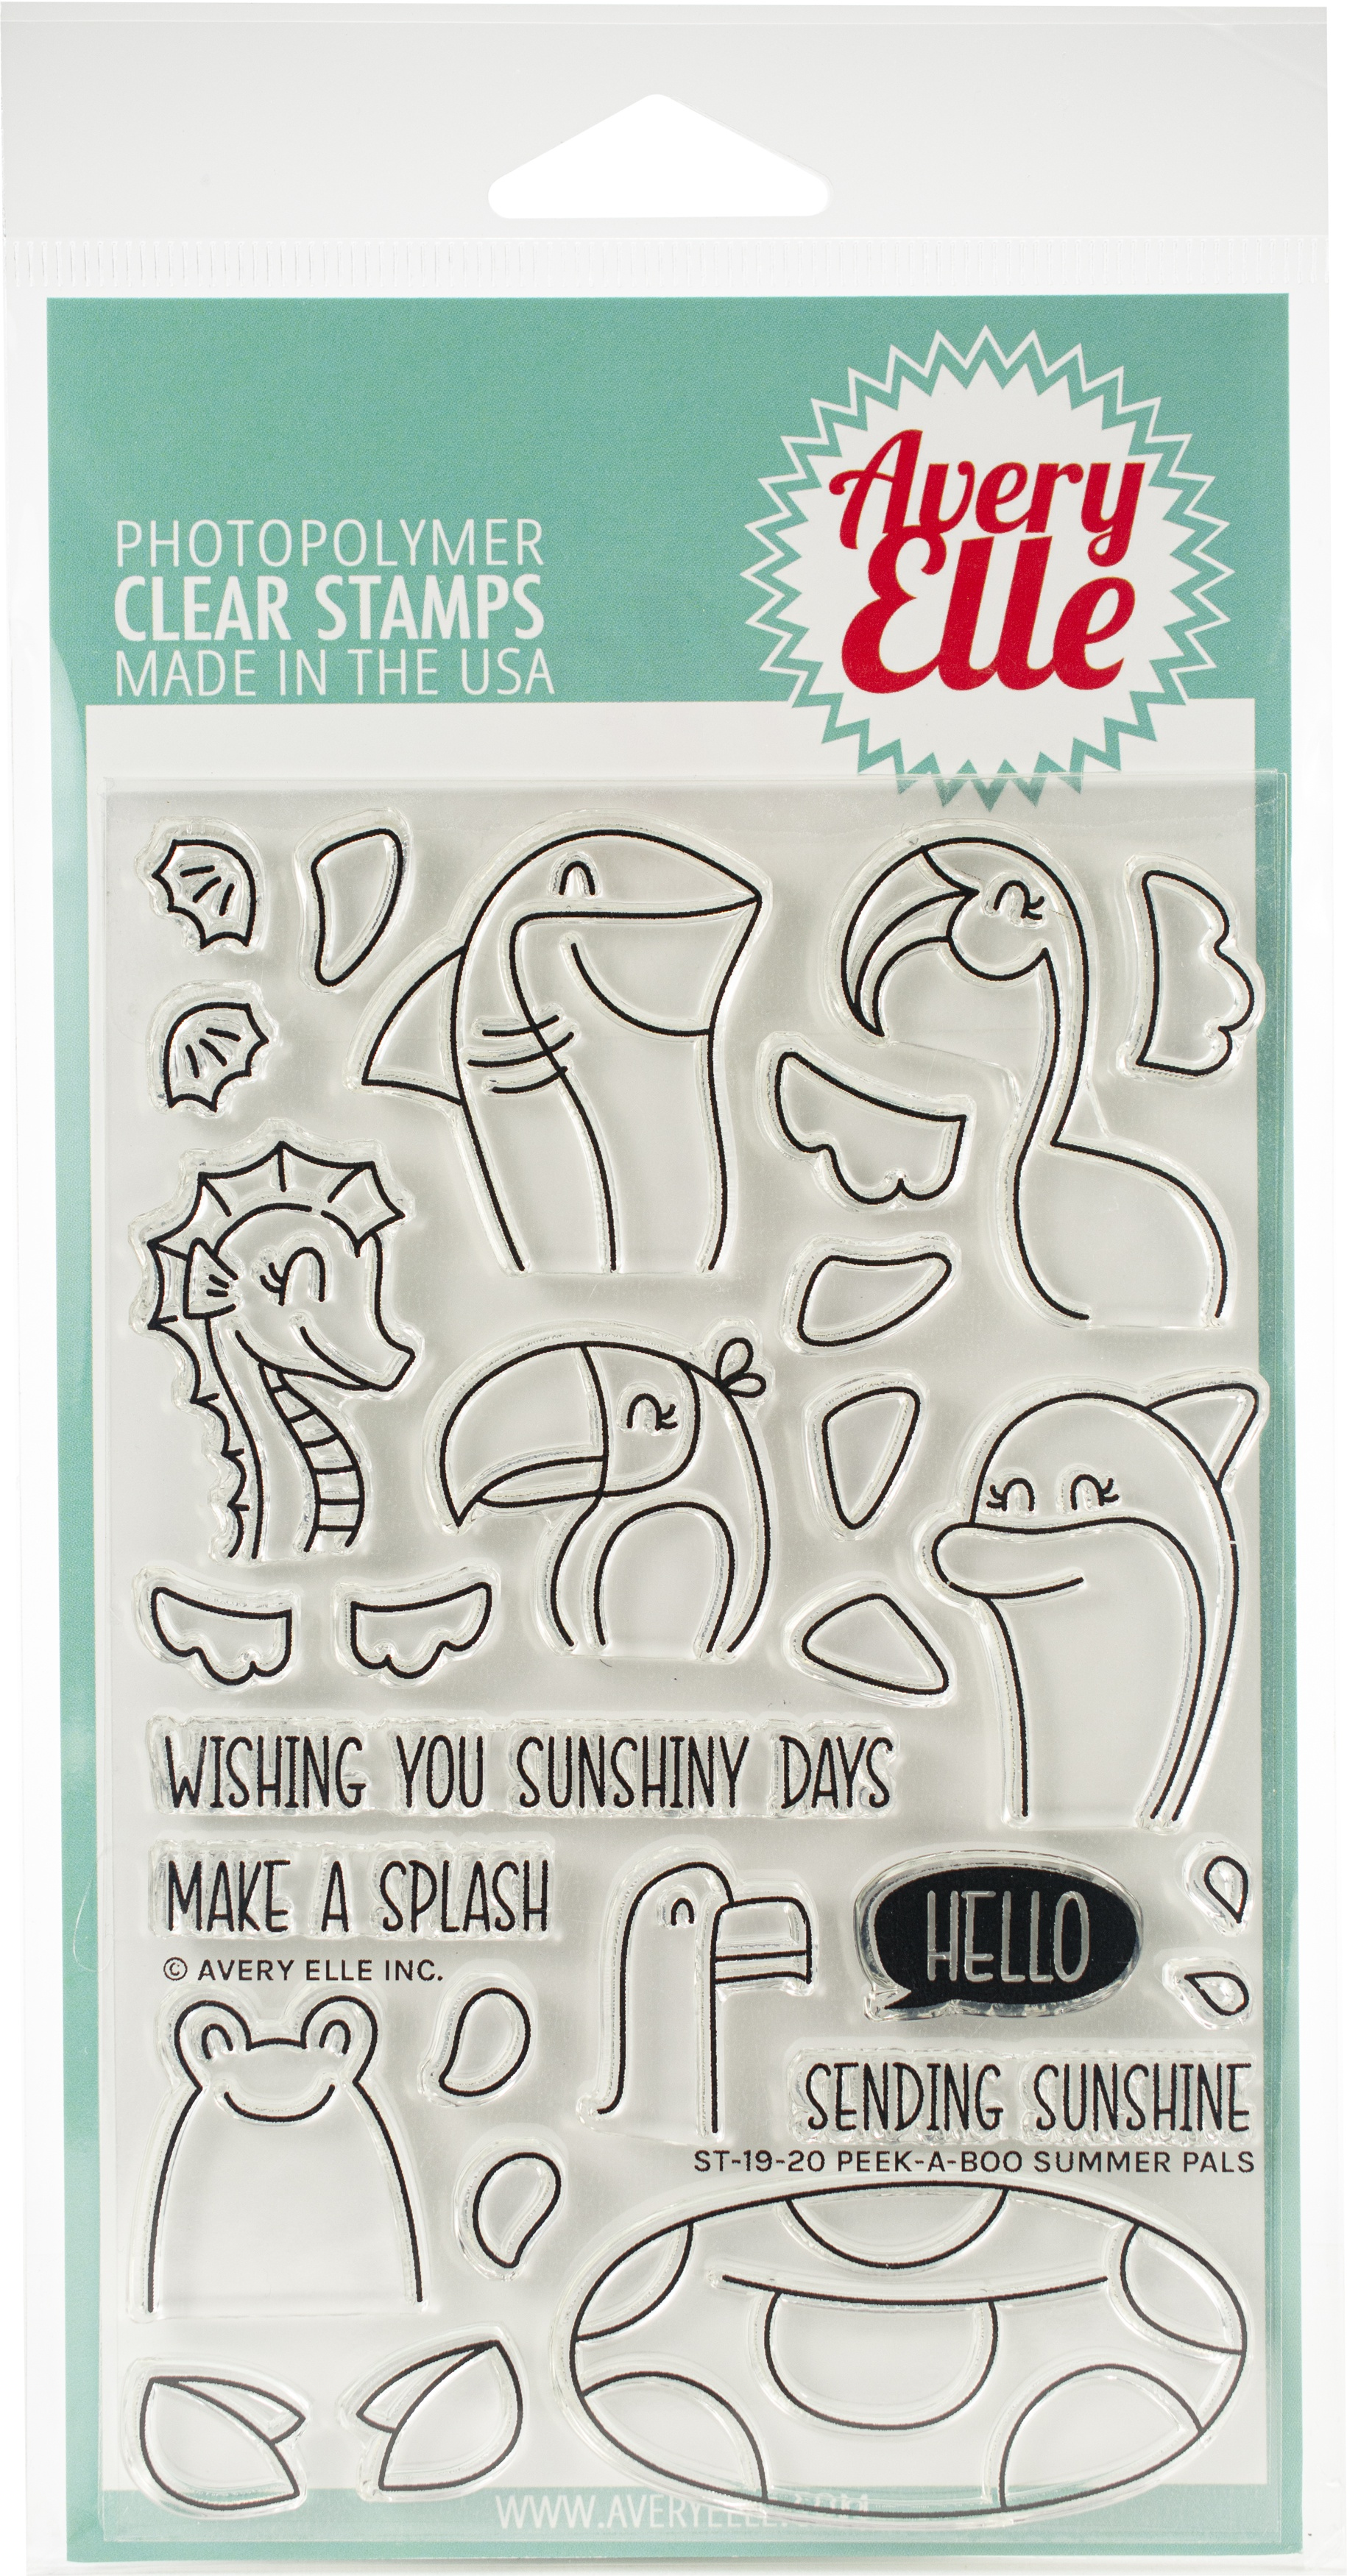 Avery Elle Clear Stamps - Peek-A-Boo Summer Pals